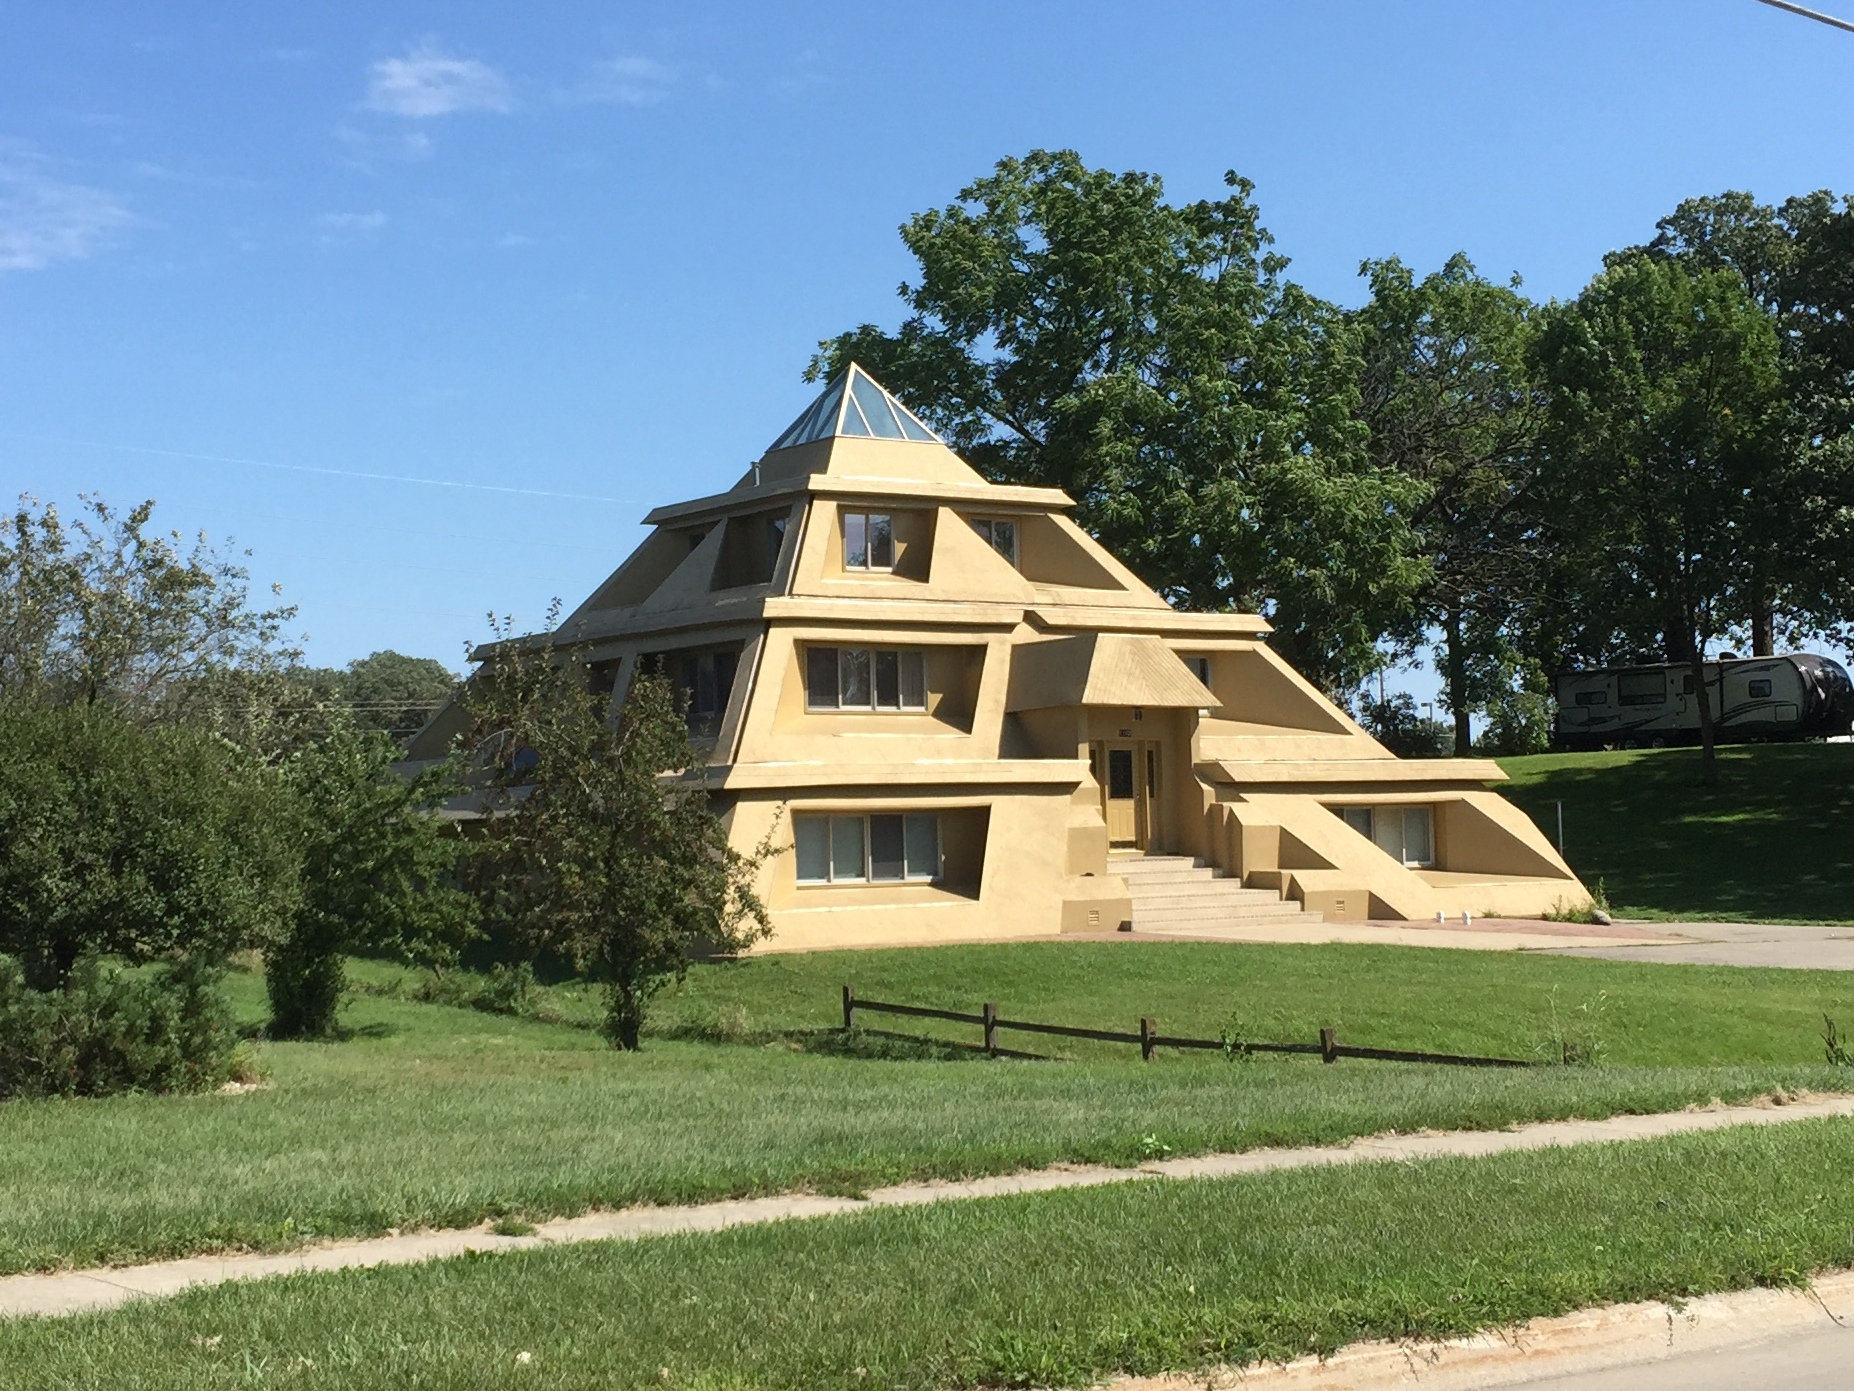 Pyramid Shaped House Designs 28 Images Pyramid House